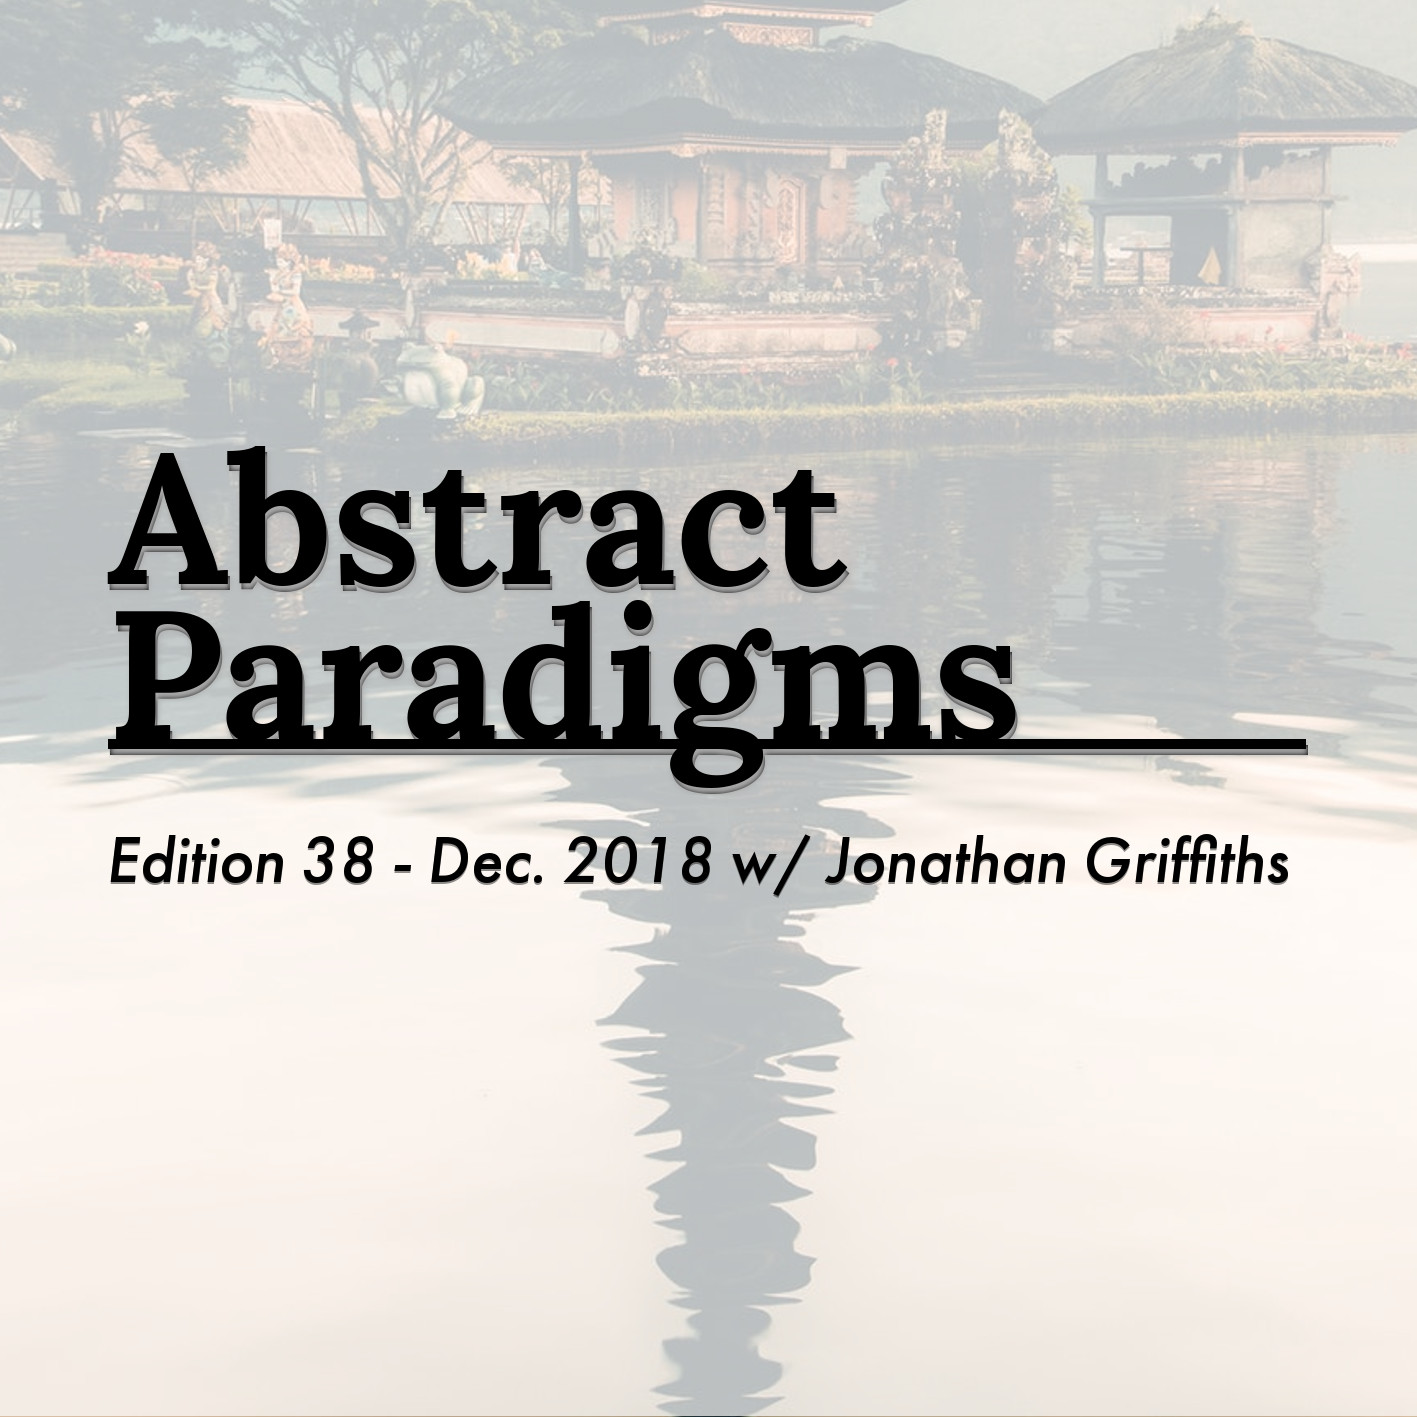 Edition 38 - December 2018 w/ Jonathan Griffiths